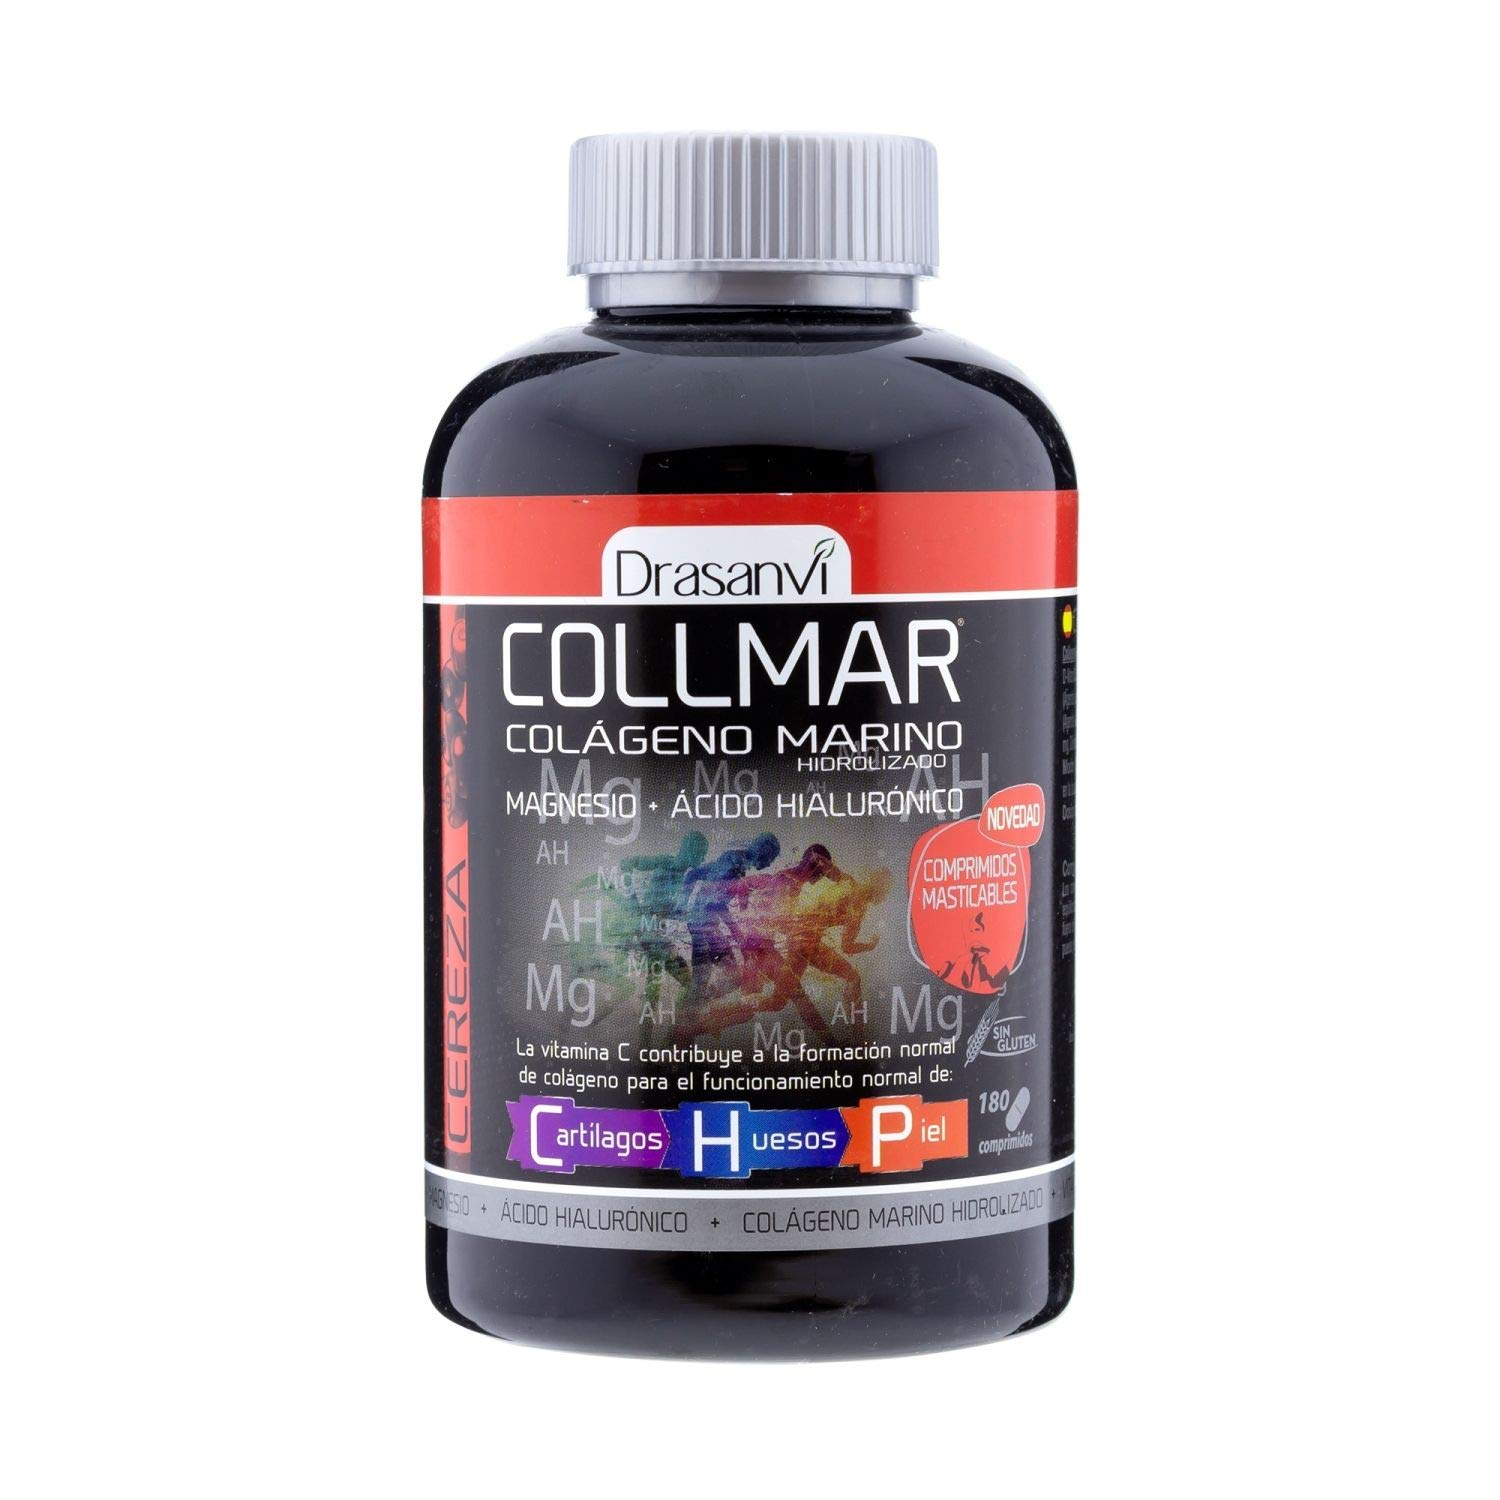 Amazon.com : Drasanvi Collmar Marine Collagen With Magnesium Cherry Flavour 180 Capsules - Take Care of Your Body with Chewable Marine Collagen - Nourish ...